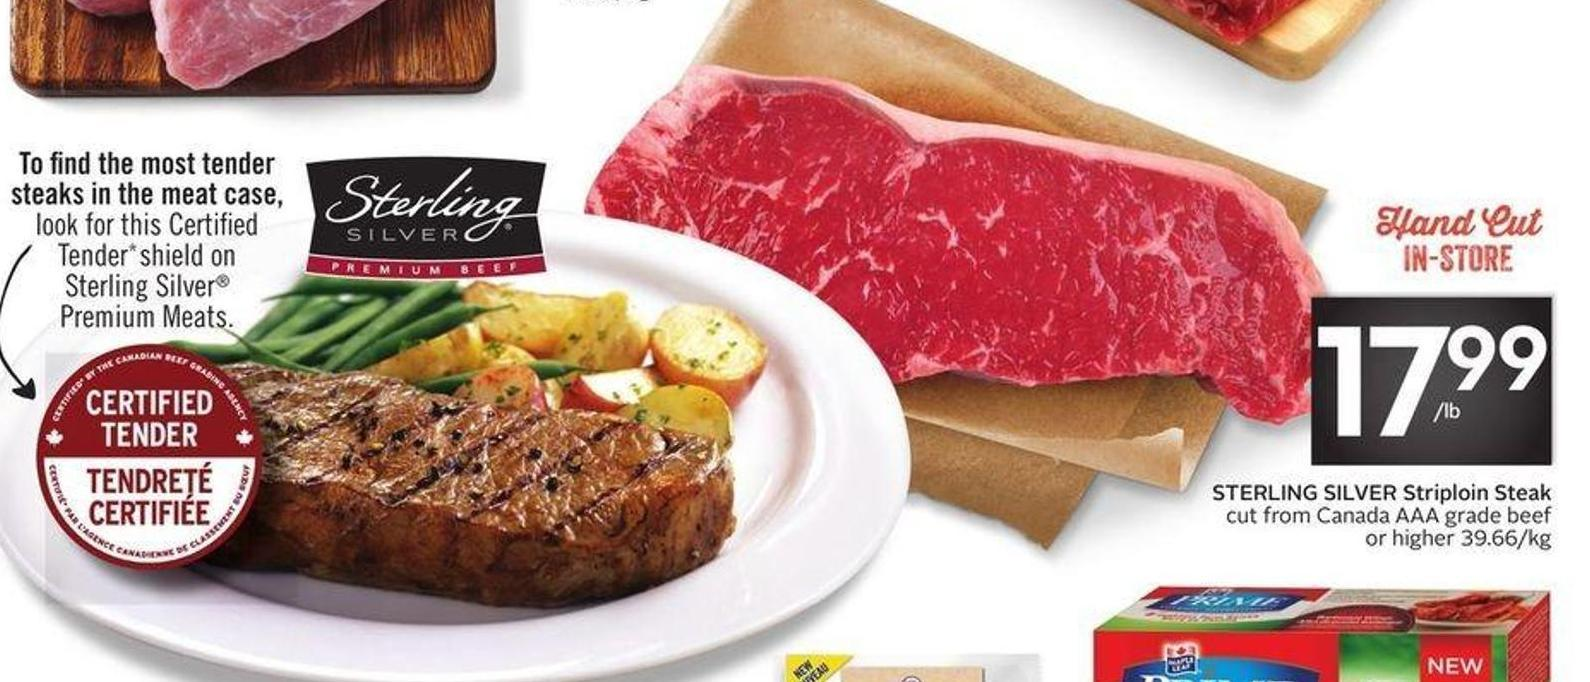 Sterling Silver Striploin Steak